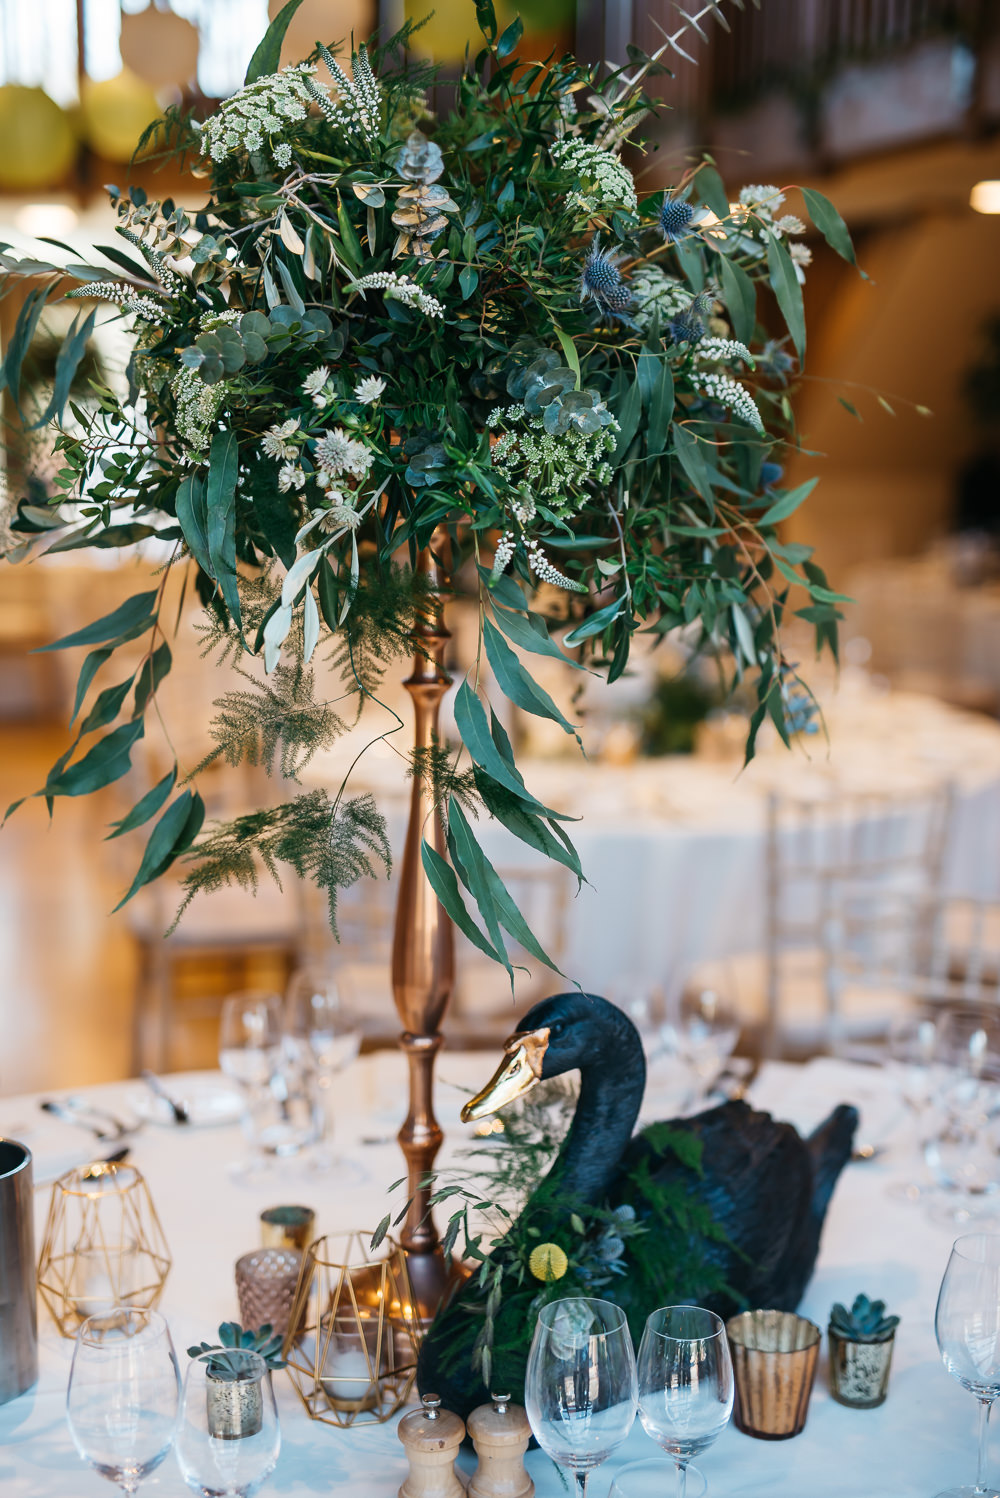 Table Centre Tall Pedestal Greenery Foliage Quirky Rustic Charm Wedding Justin Bailey Photography